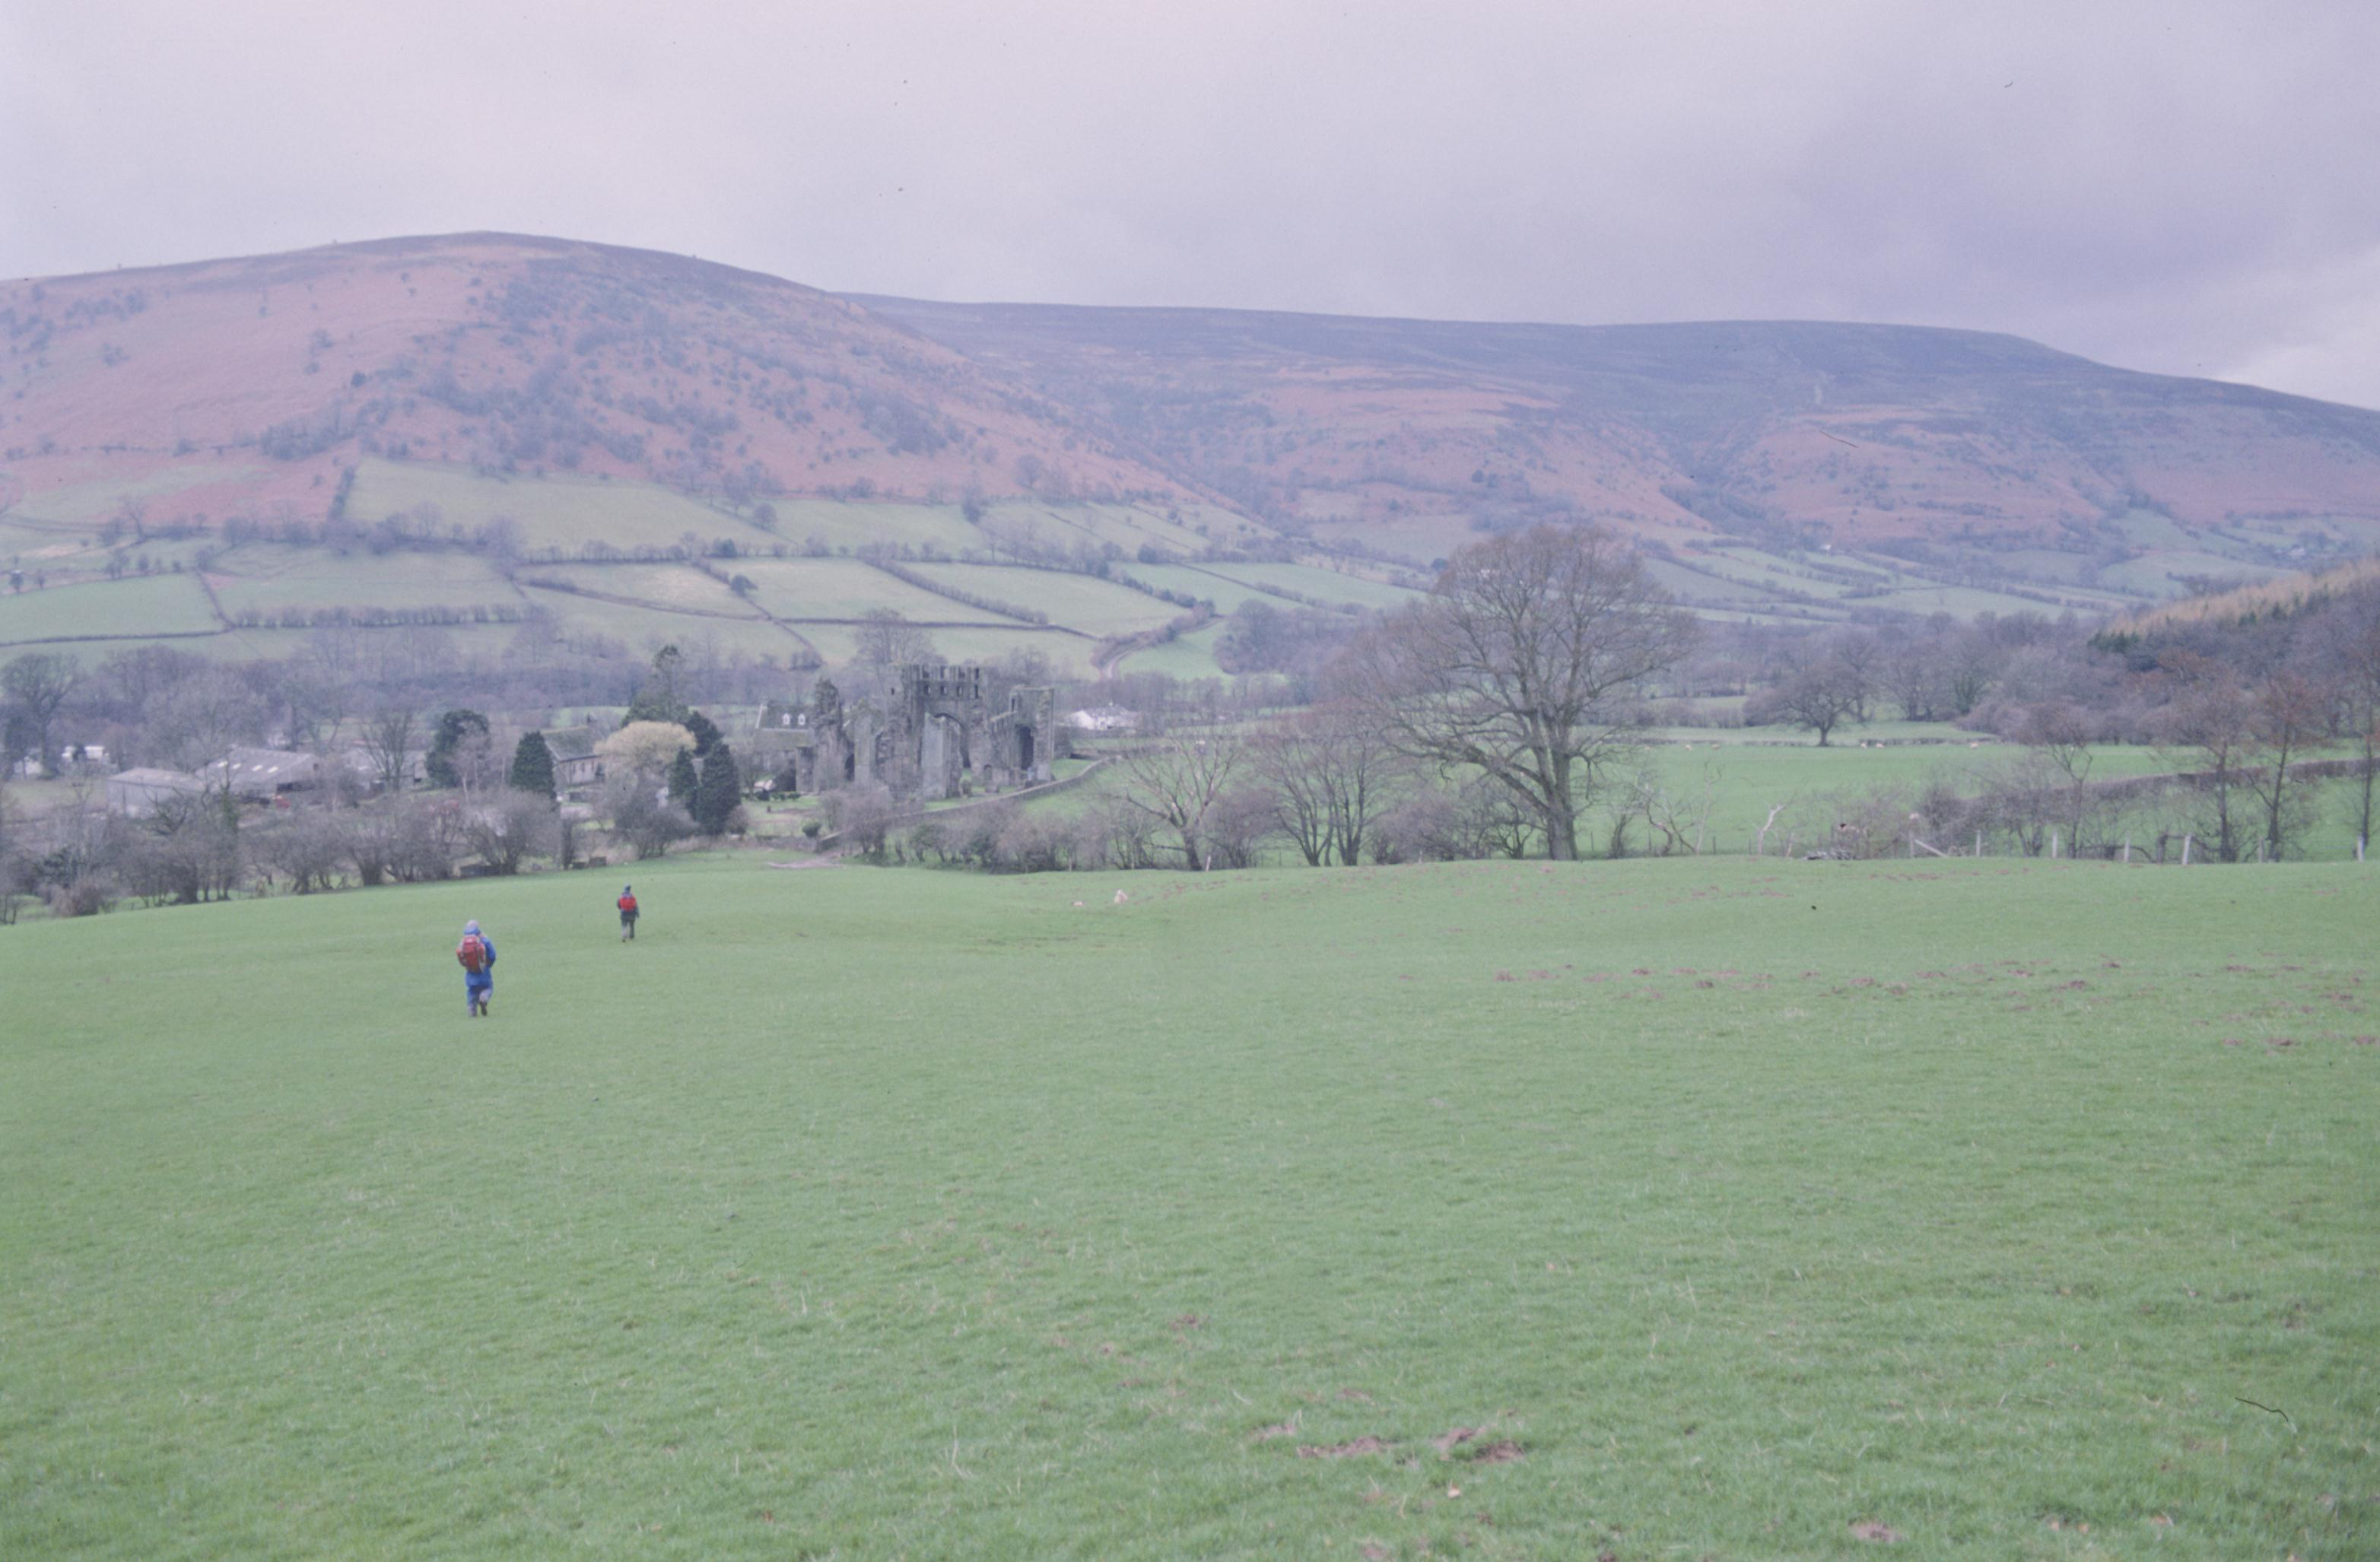 In the Vale of Ewyas – a descent to Llanthony Abbey